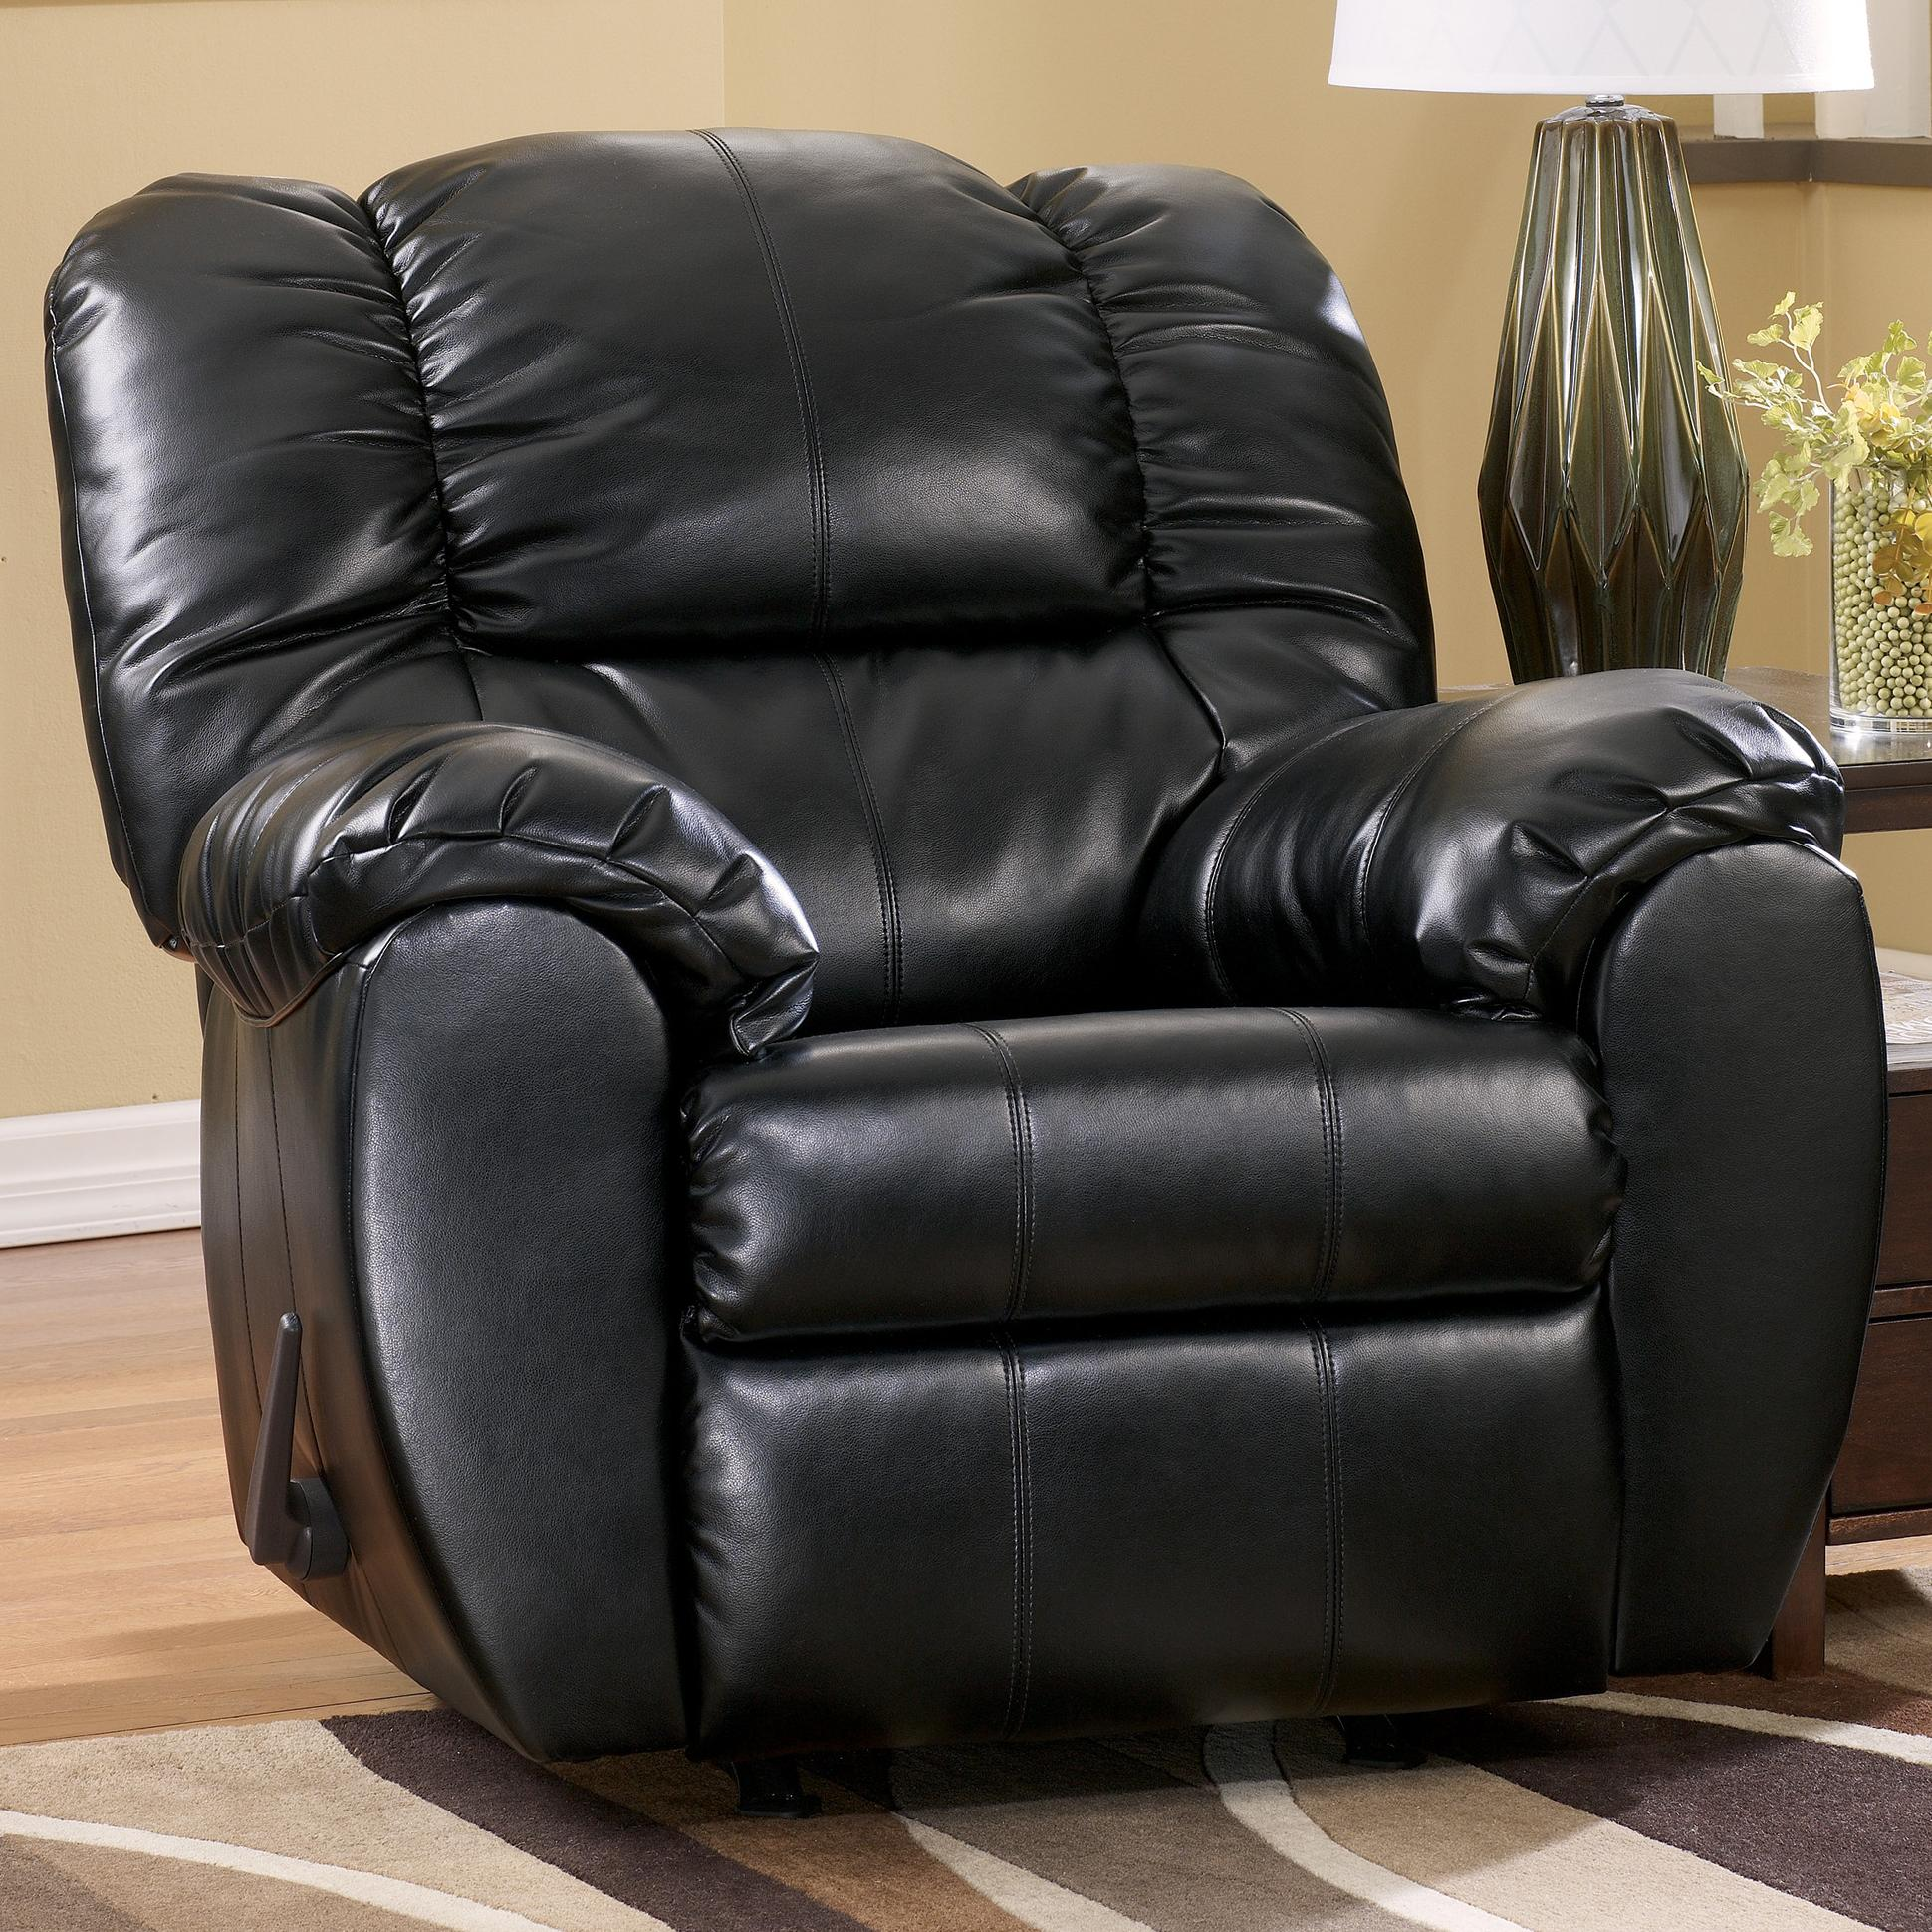 Signature Design by Ashley Dylan DuraBlend - Onyx Rocker Recliner - Item Number 7060425 : capote durablend sectional - Sectionals, Sofas & Couches